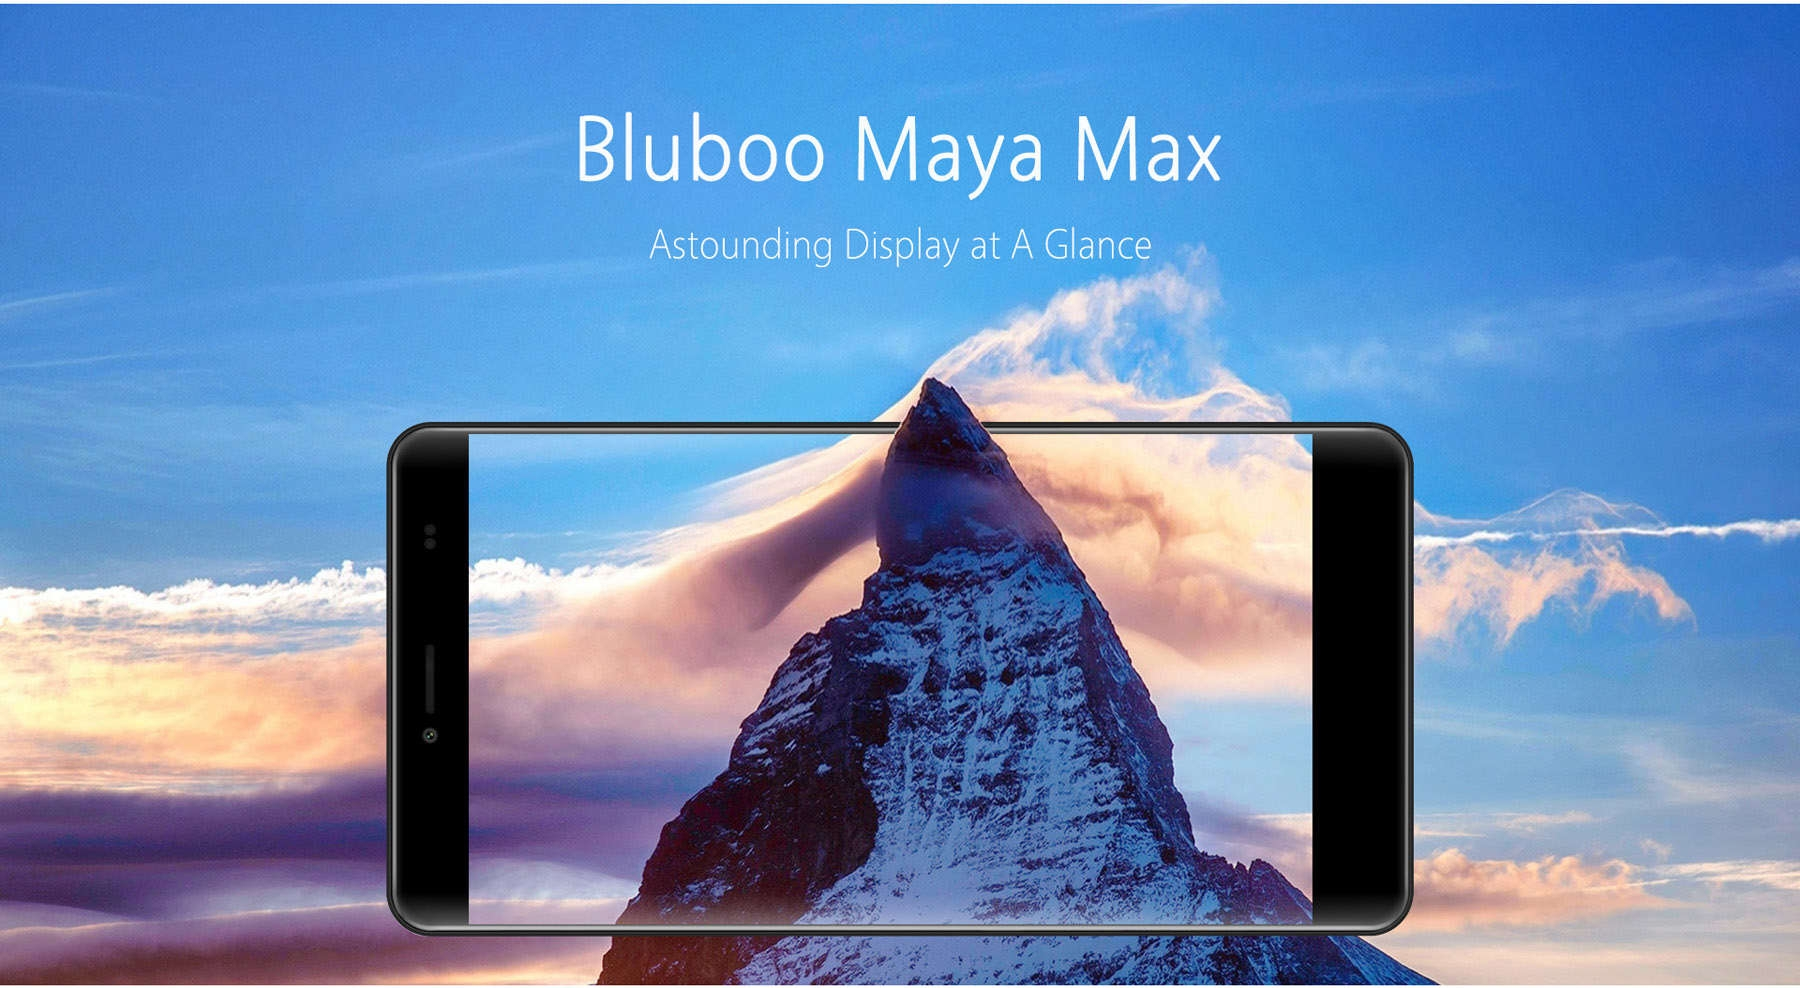 refurbish Bluboo Maya Max Android 6.0 6.0 inch 4G+ Phablet MTK6750 Octa Core 1.5GHz 3GB RAM 32GB ROM 13.0MP Rear Camera GPS OTG Fingerprint Scanner